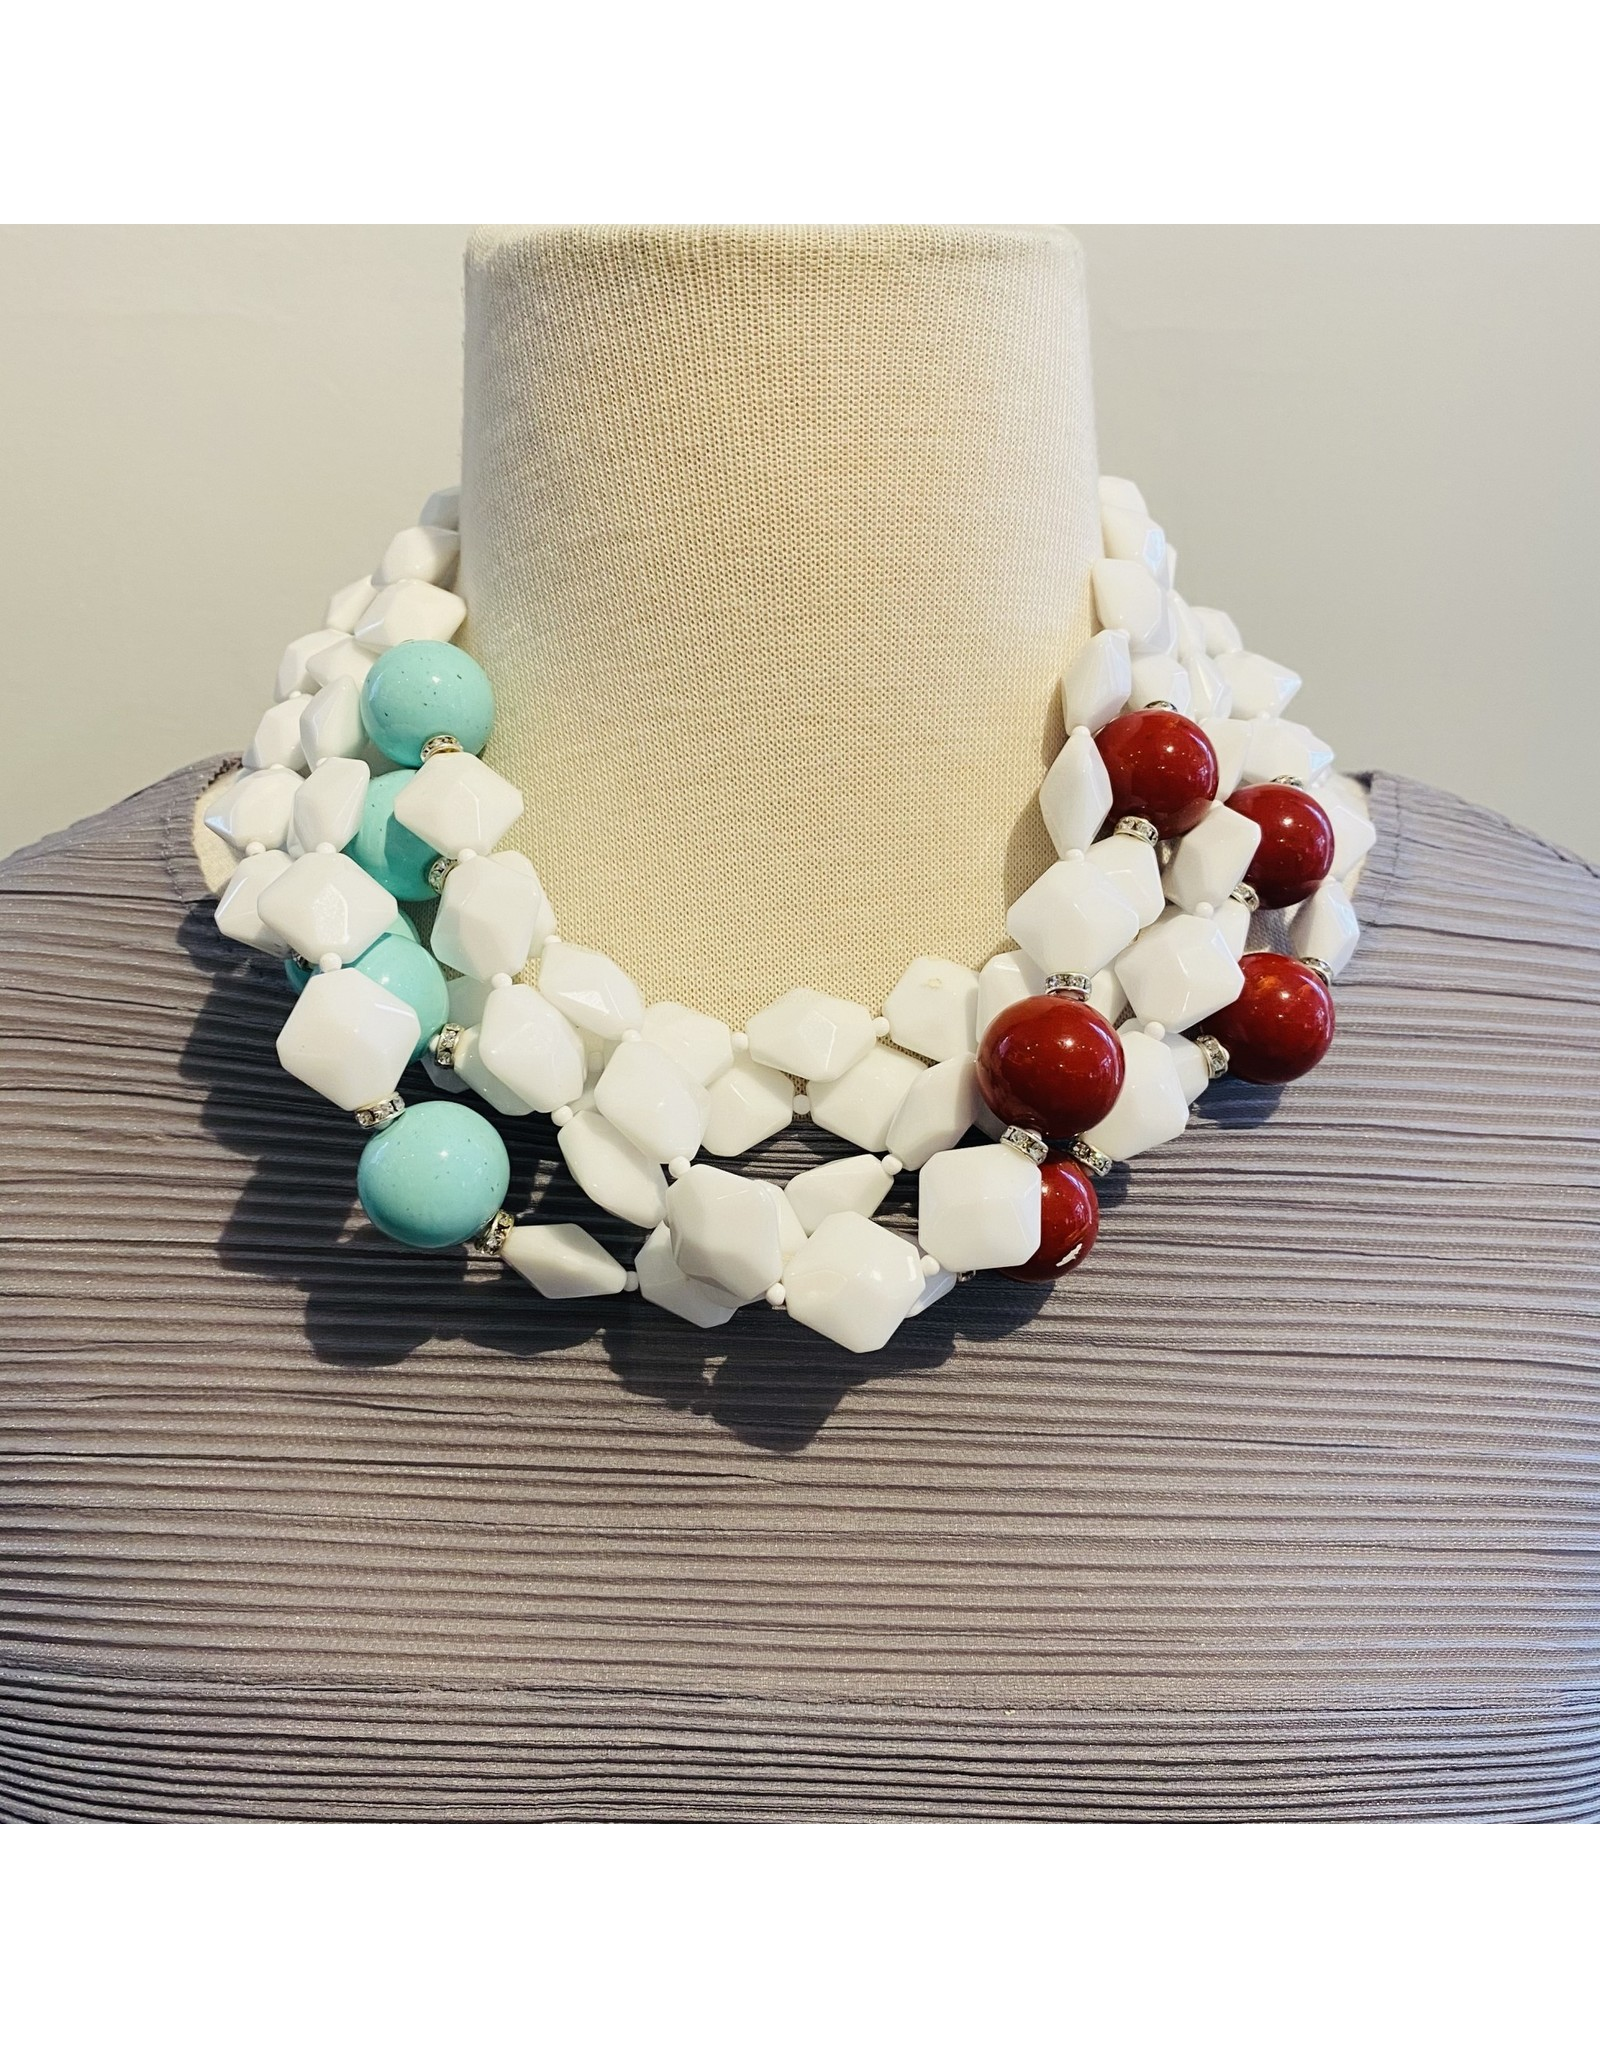 Angela Caputi Whte Necklace w/ Red & Turquoise Beads